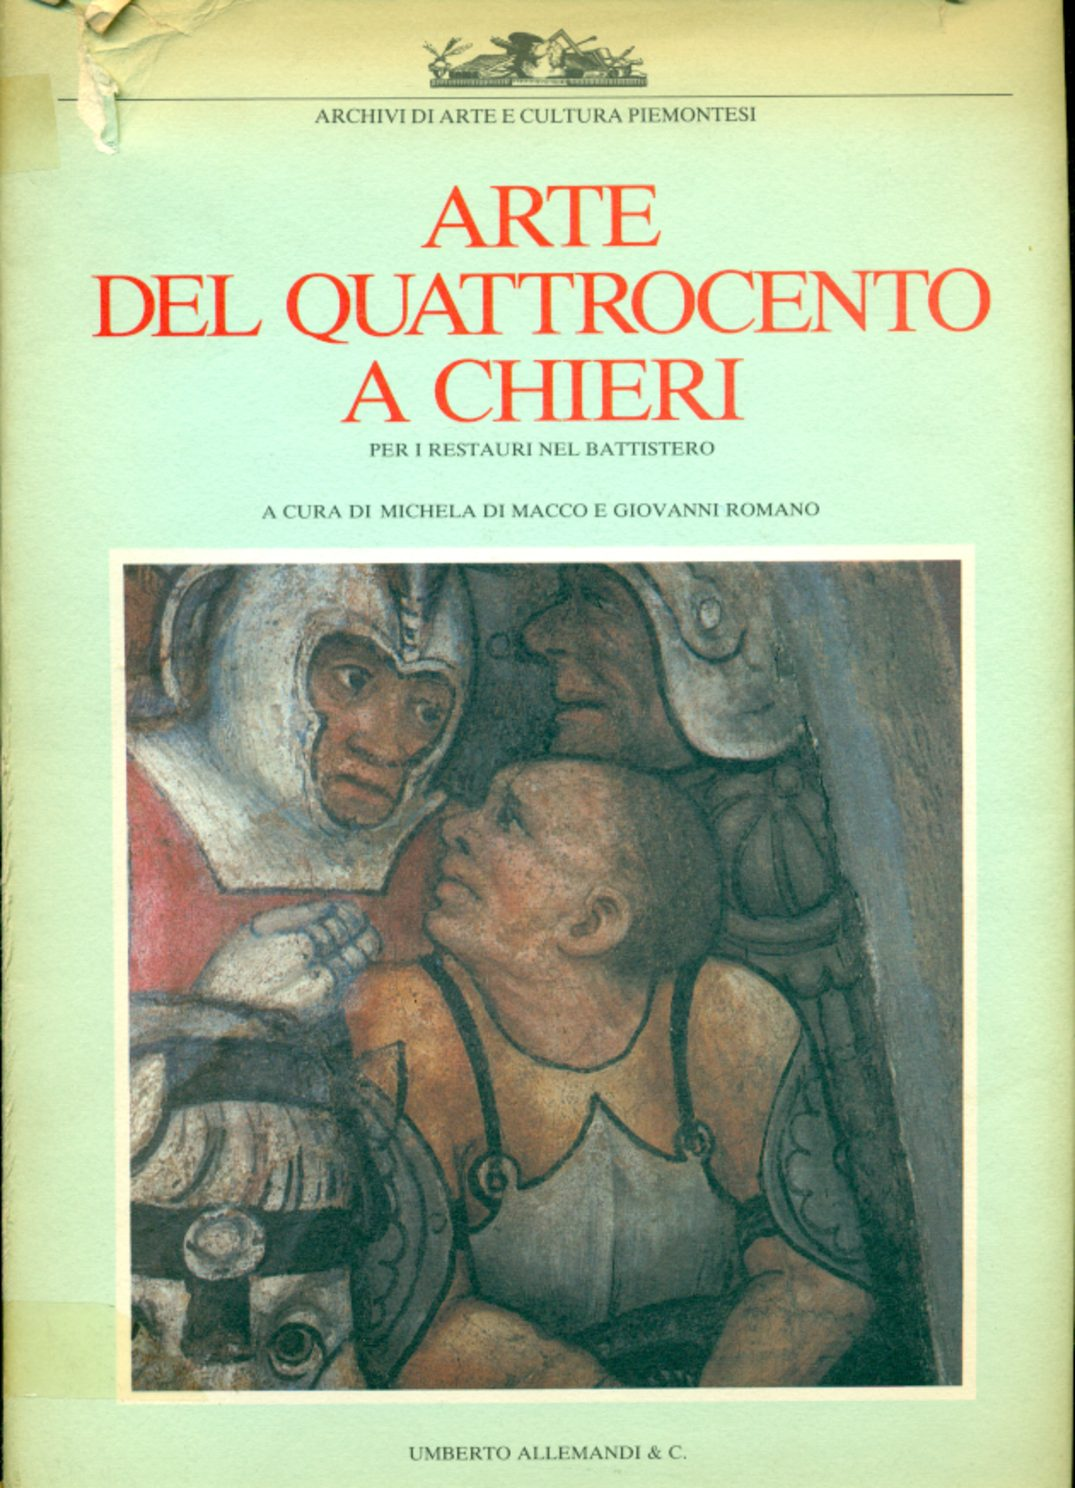 http://cbccoop.it/app/uploads/2017/06/COP-Duomo-Chieri-pdf.jpg